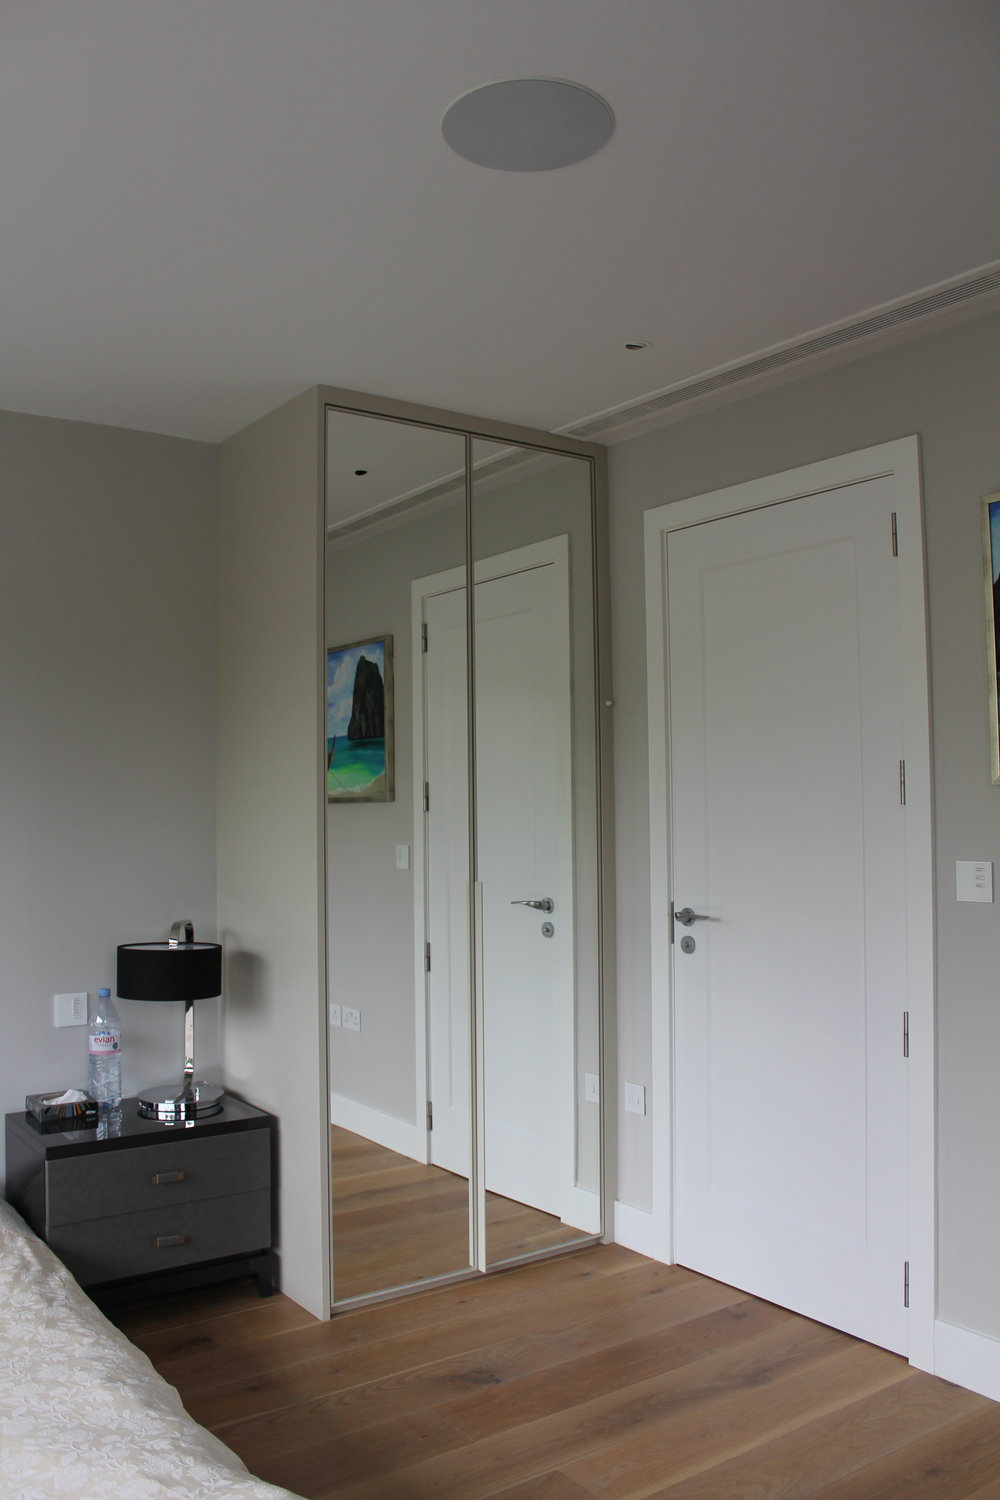 Aluminium Powder Coated Frame in Light Dove Grey with Silver Mirror Hinged Wardrobes